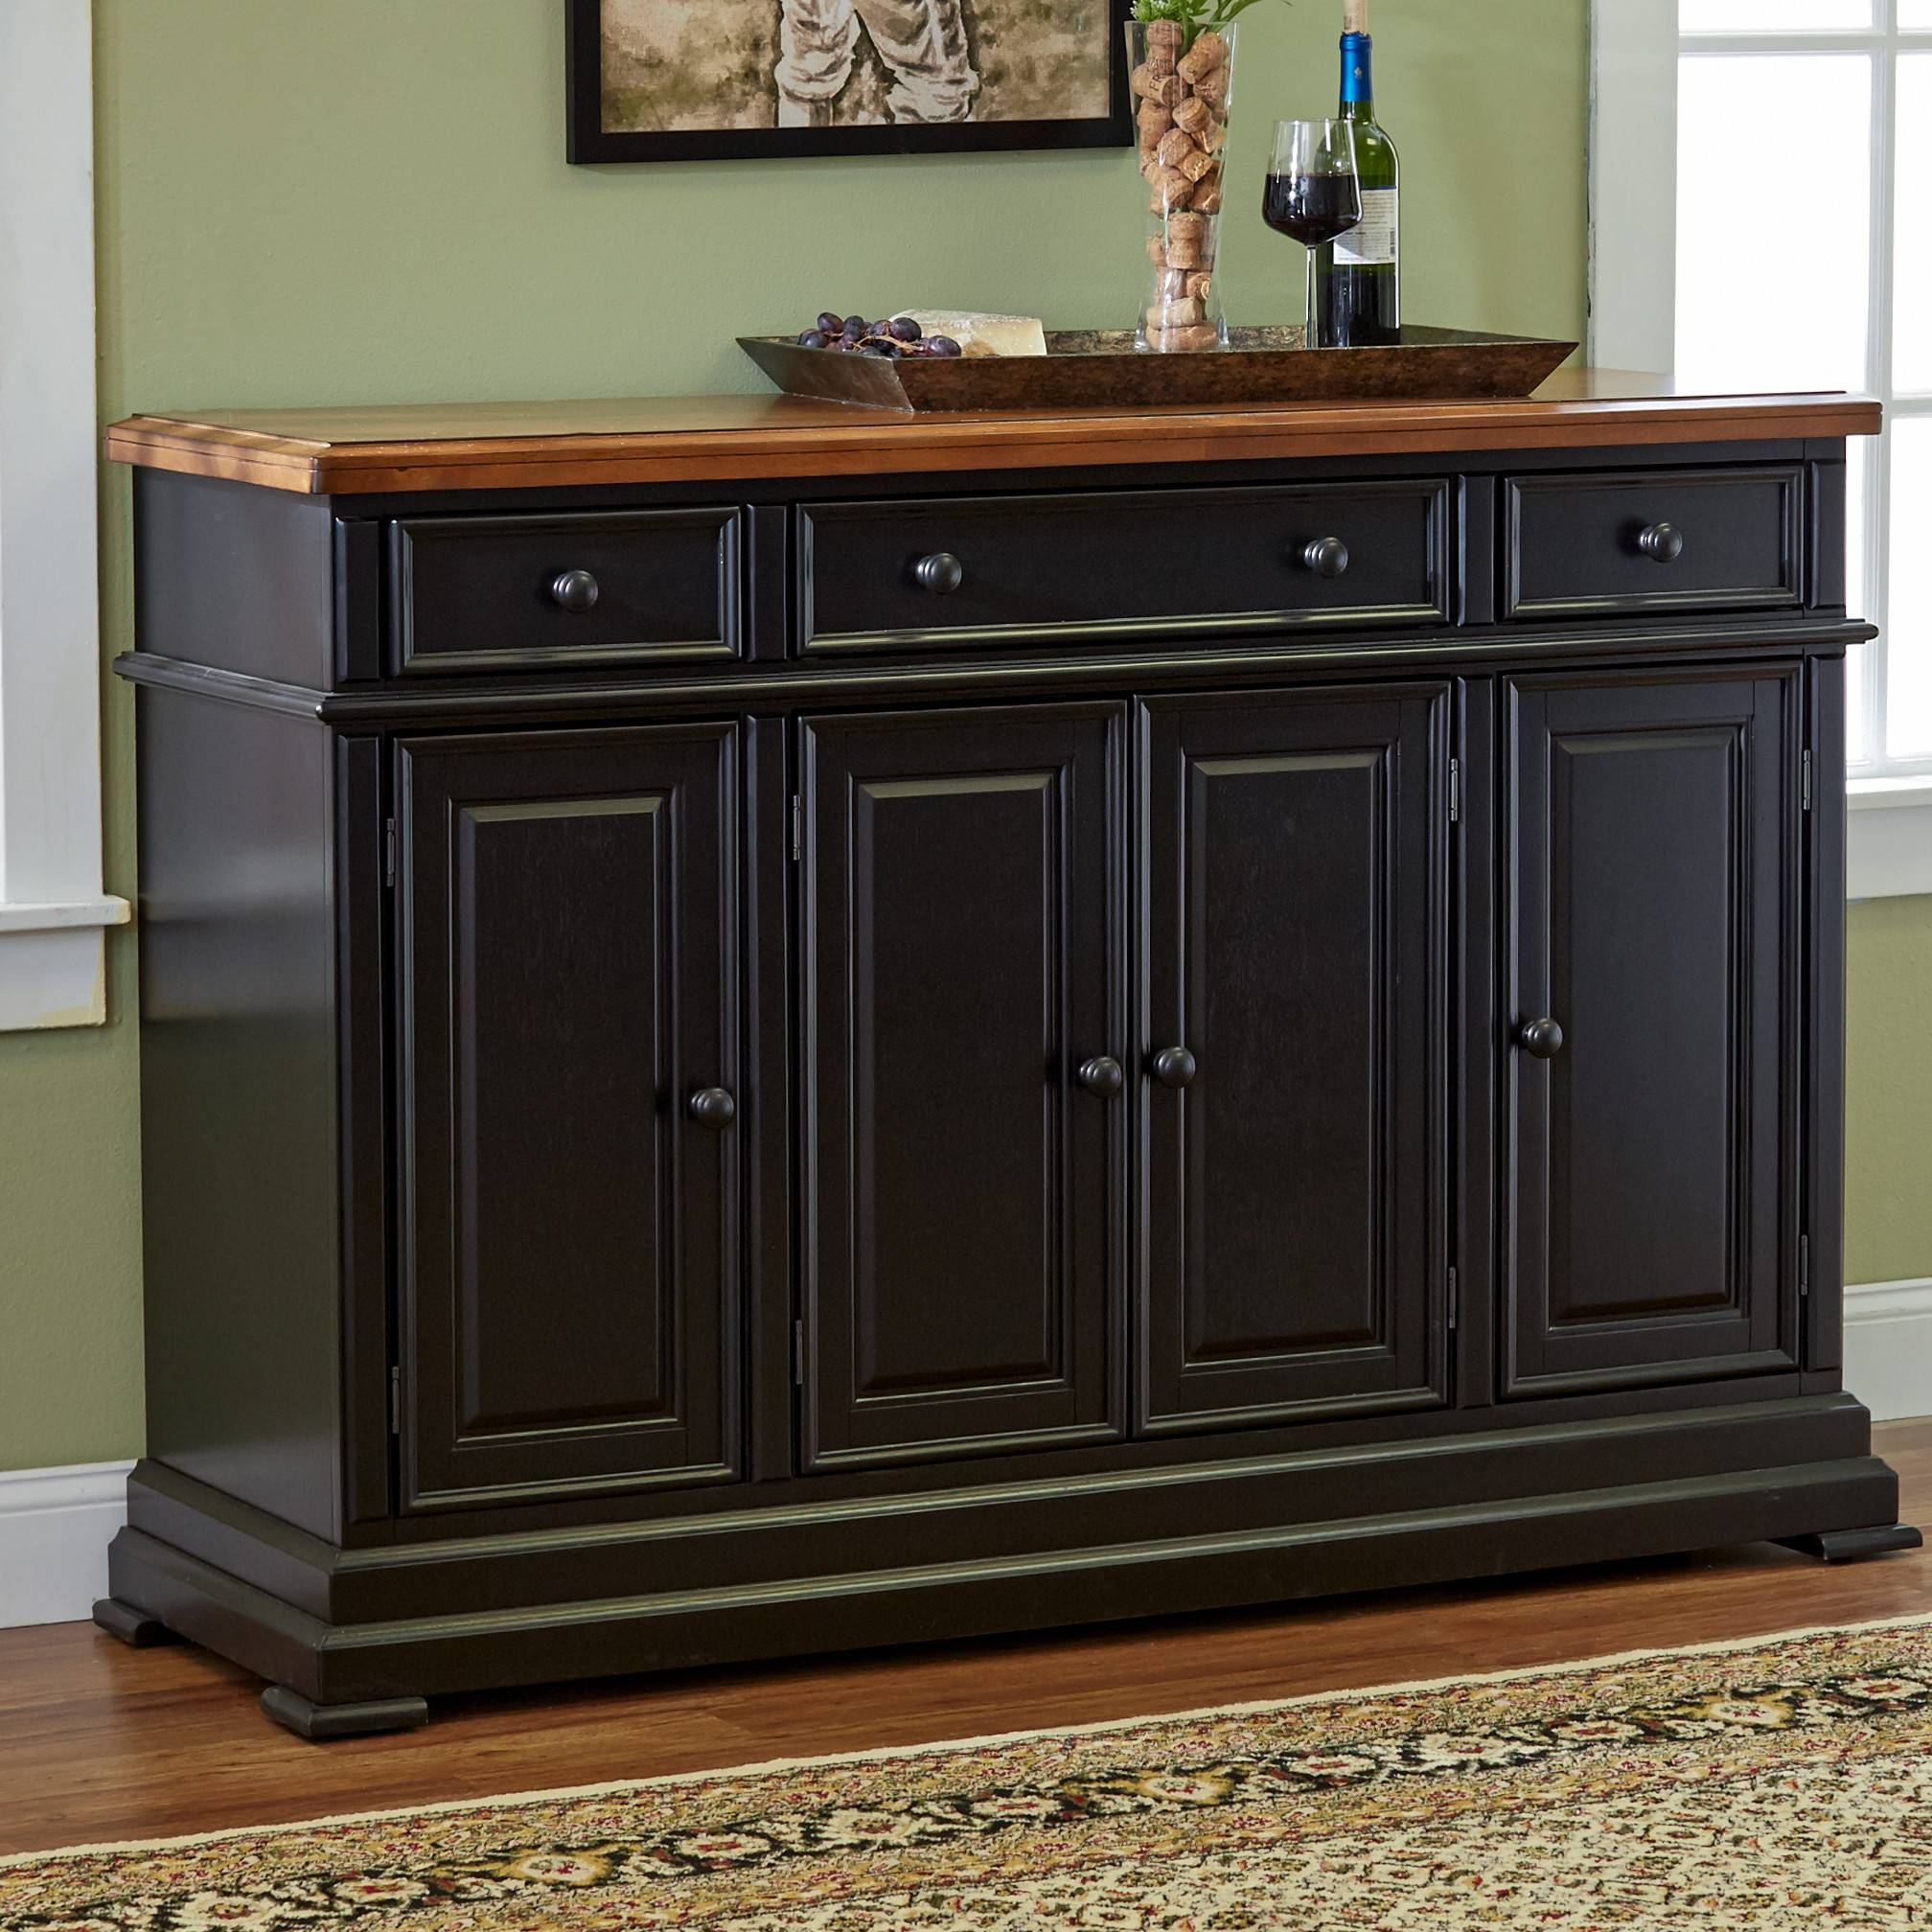 Kchen Sideboard. Simple Costzon Storage Sideboard Home Kitchen within Sideboard Buffet Tables (Image 11 of 15)